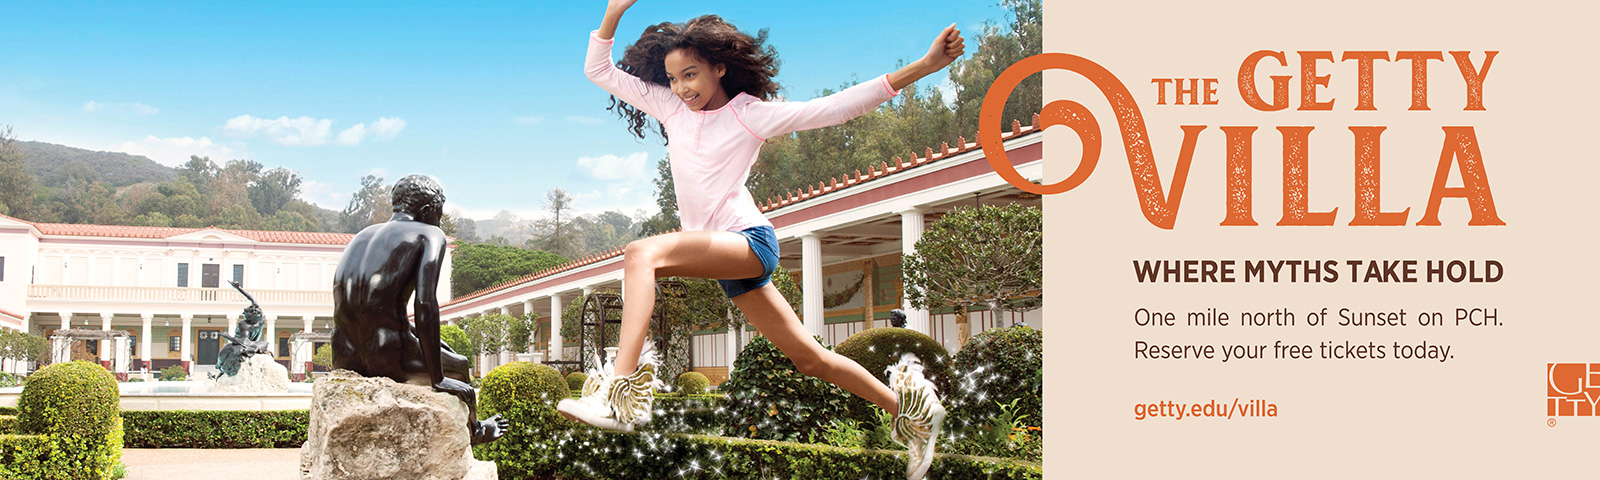 In a billboard ad, a tweenage girl leaps for joy, silhouetted against a blue sky in the garden of the Getty Villa